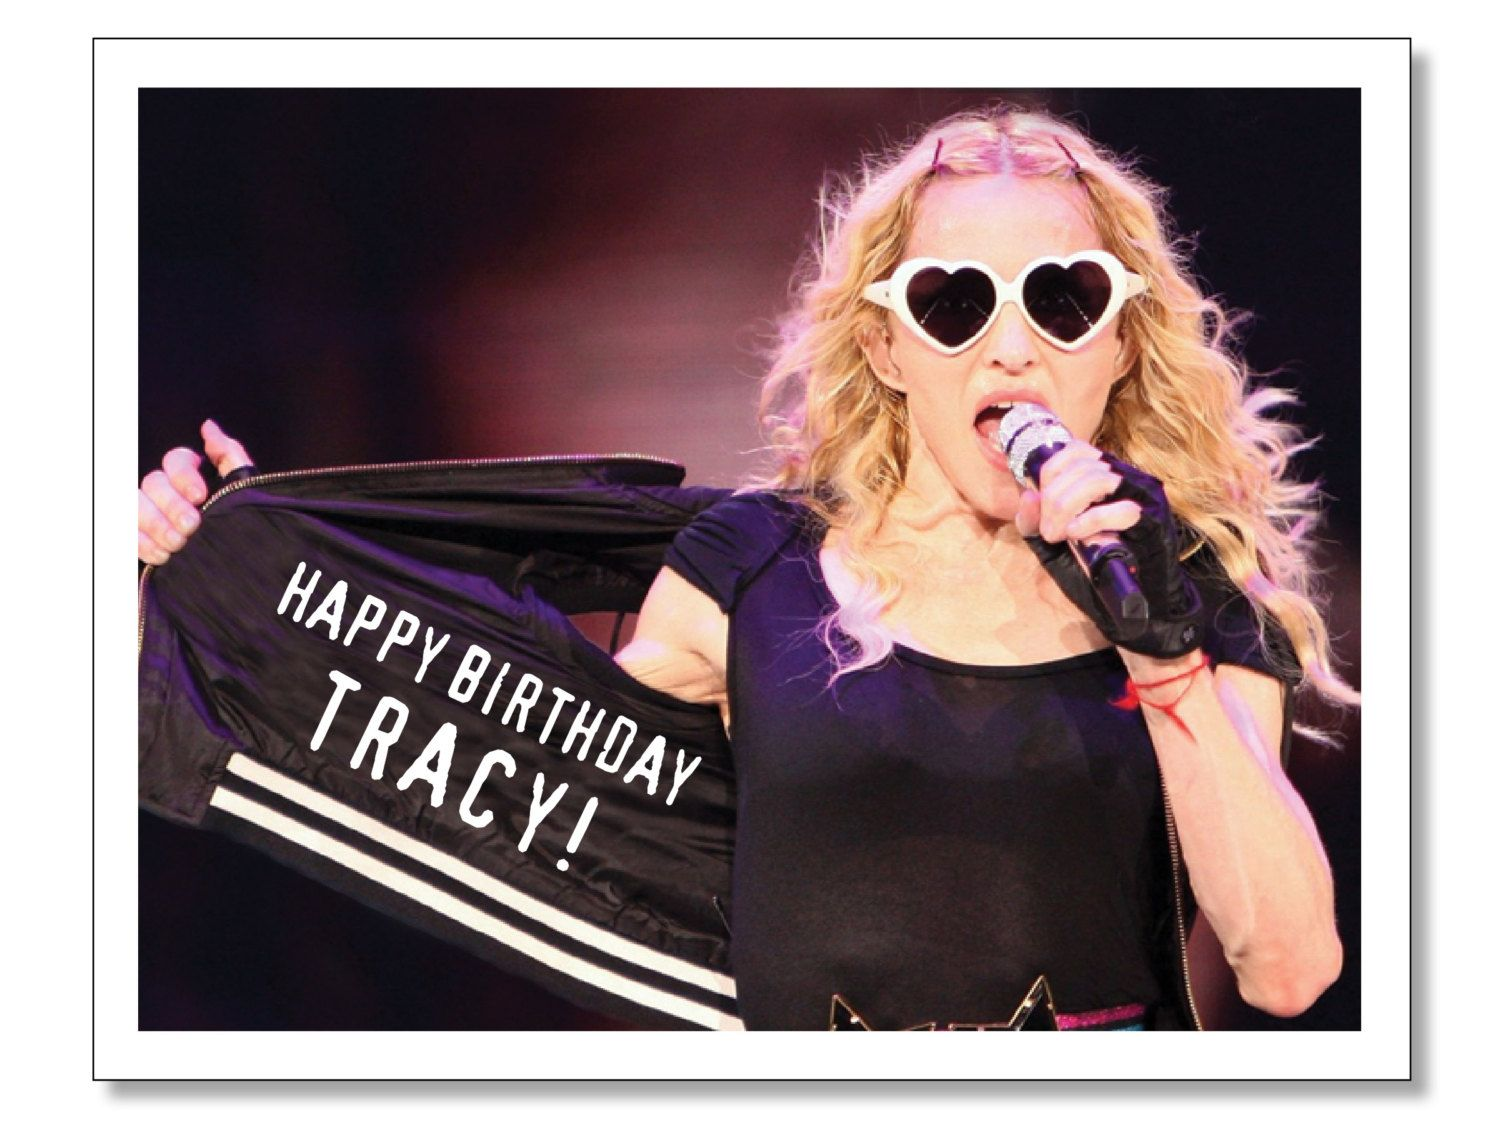 Madonna happy birthday card get your super awesome sexy funny madonna happy birthday card get your super awesome sexy funny madonna tribute card here bookmarktalkfo Image collections